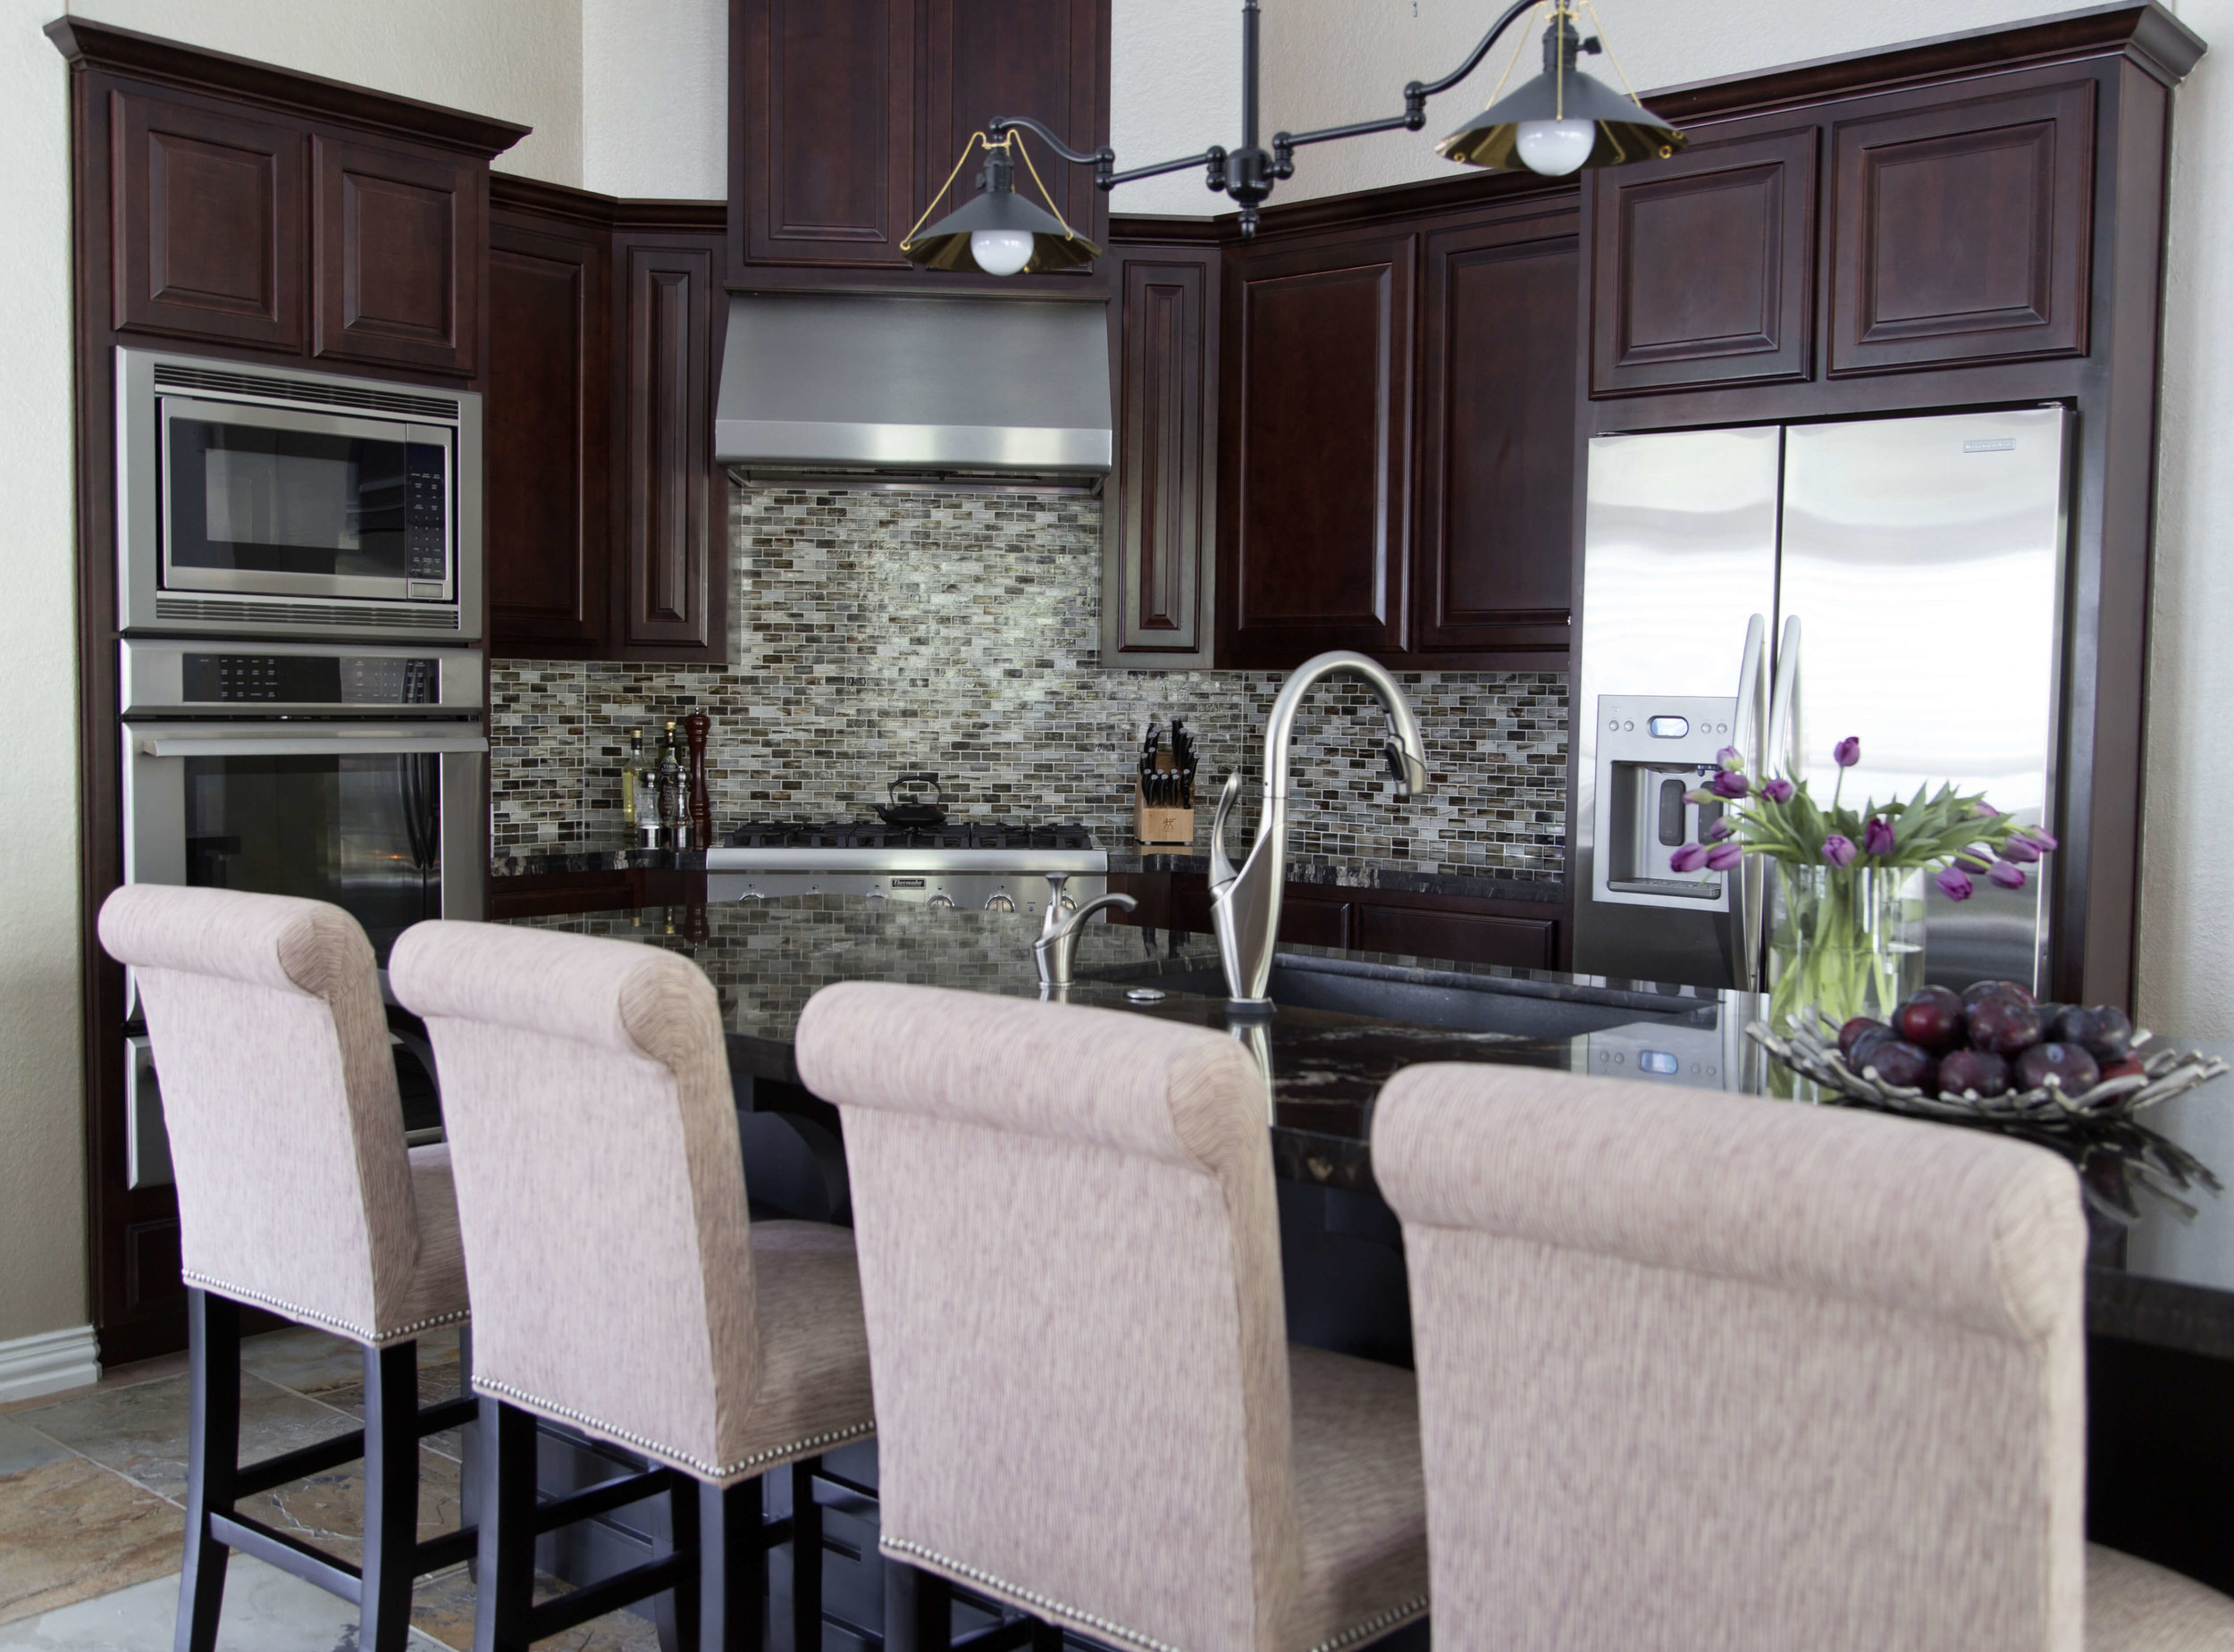 An Oddly Shaped Kitchen Island Why It S One Of My Biggest Pet Peeves Designed